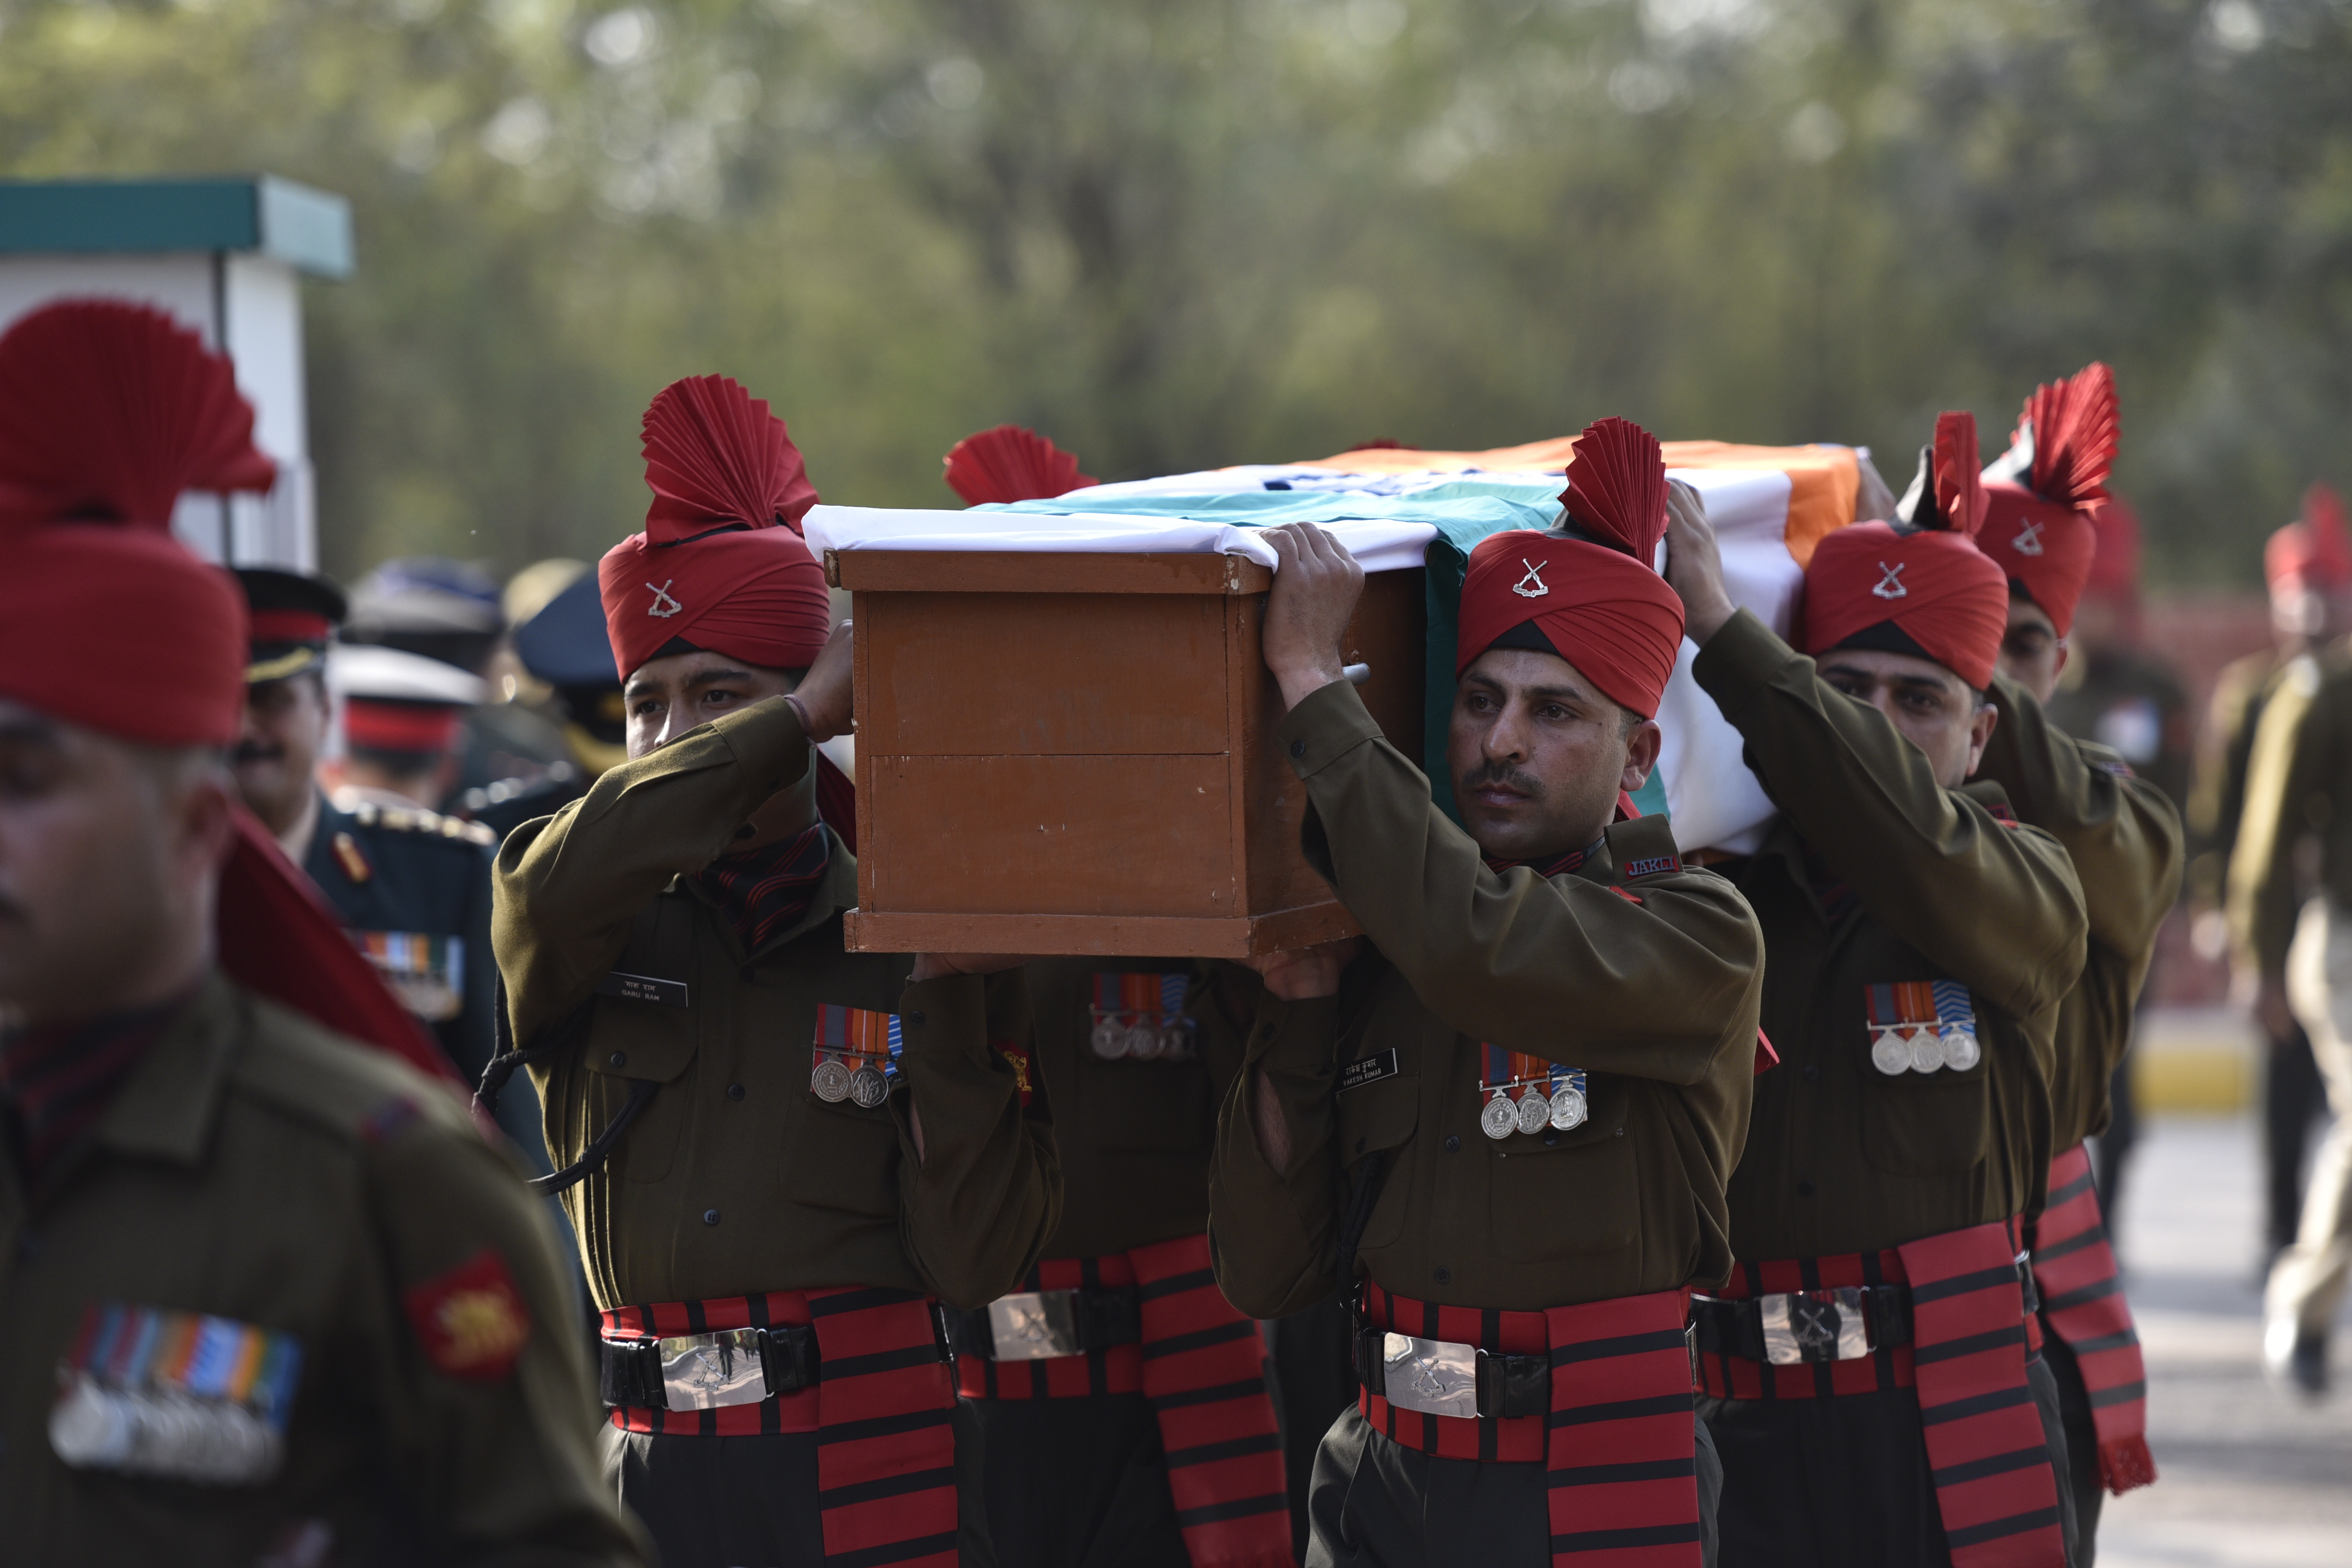 Soliders carrying the coffin of the rescued soldier Lance Naik Hanamanthappa during his funeral ceremony at Brar Square Crematorium on Feb. 11, 2016, in New Delhi